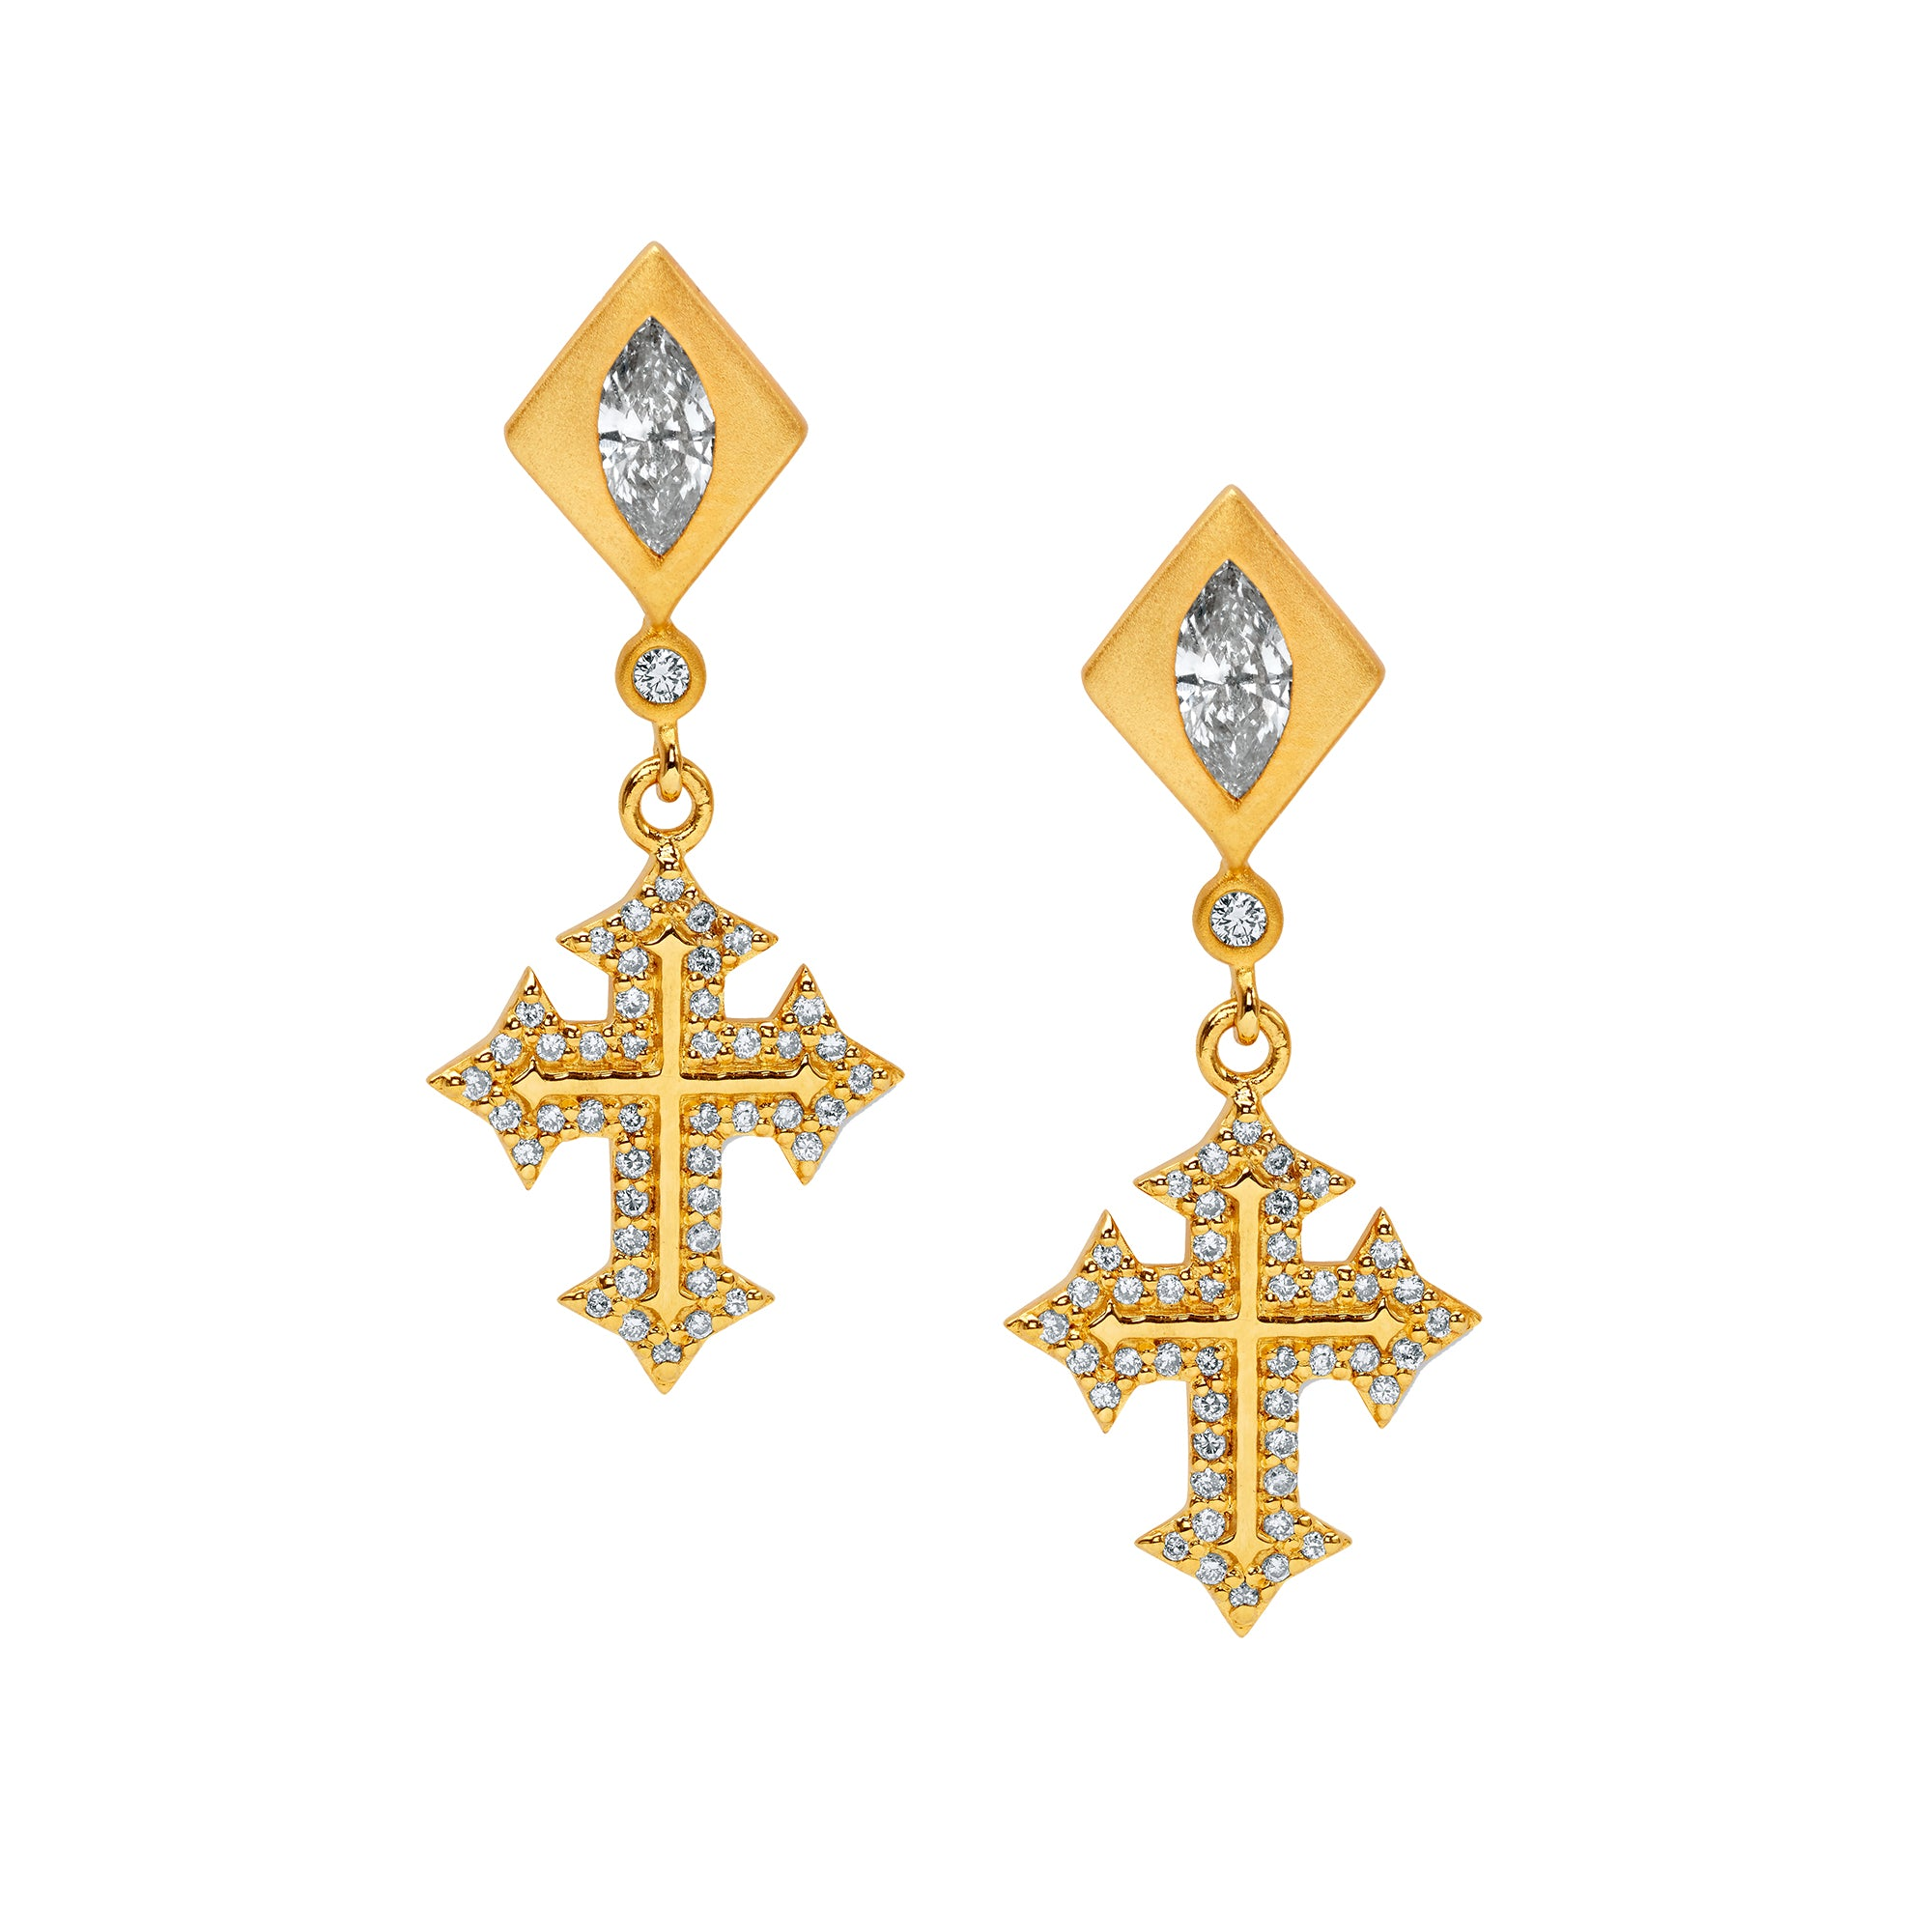 Gold & White Diamond Dainty Cross Earrings by Buddha Mama for Broken English Jewelry